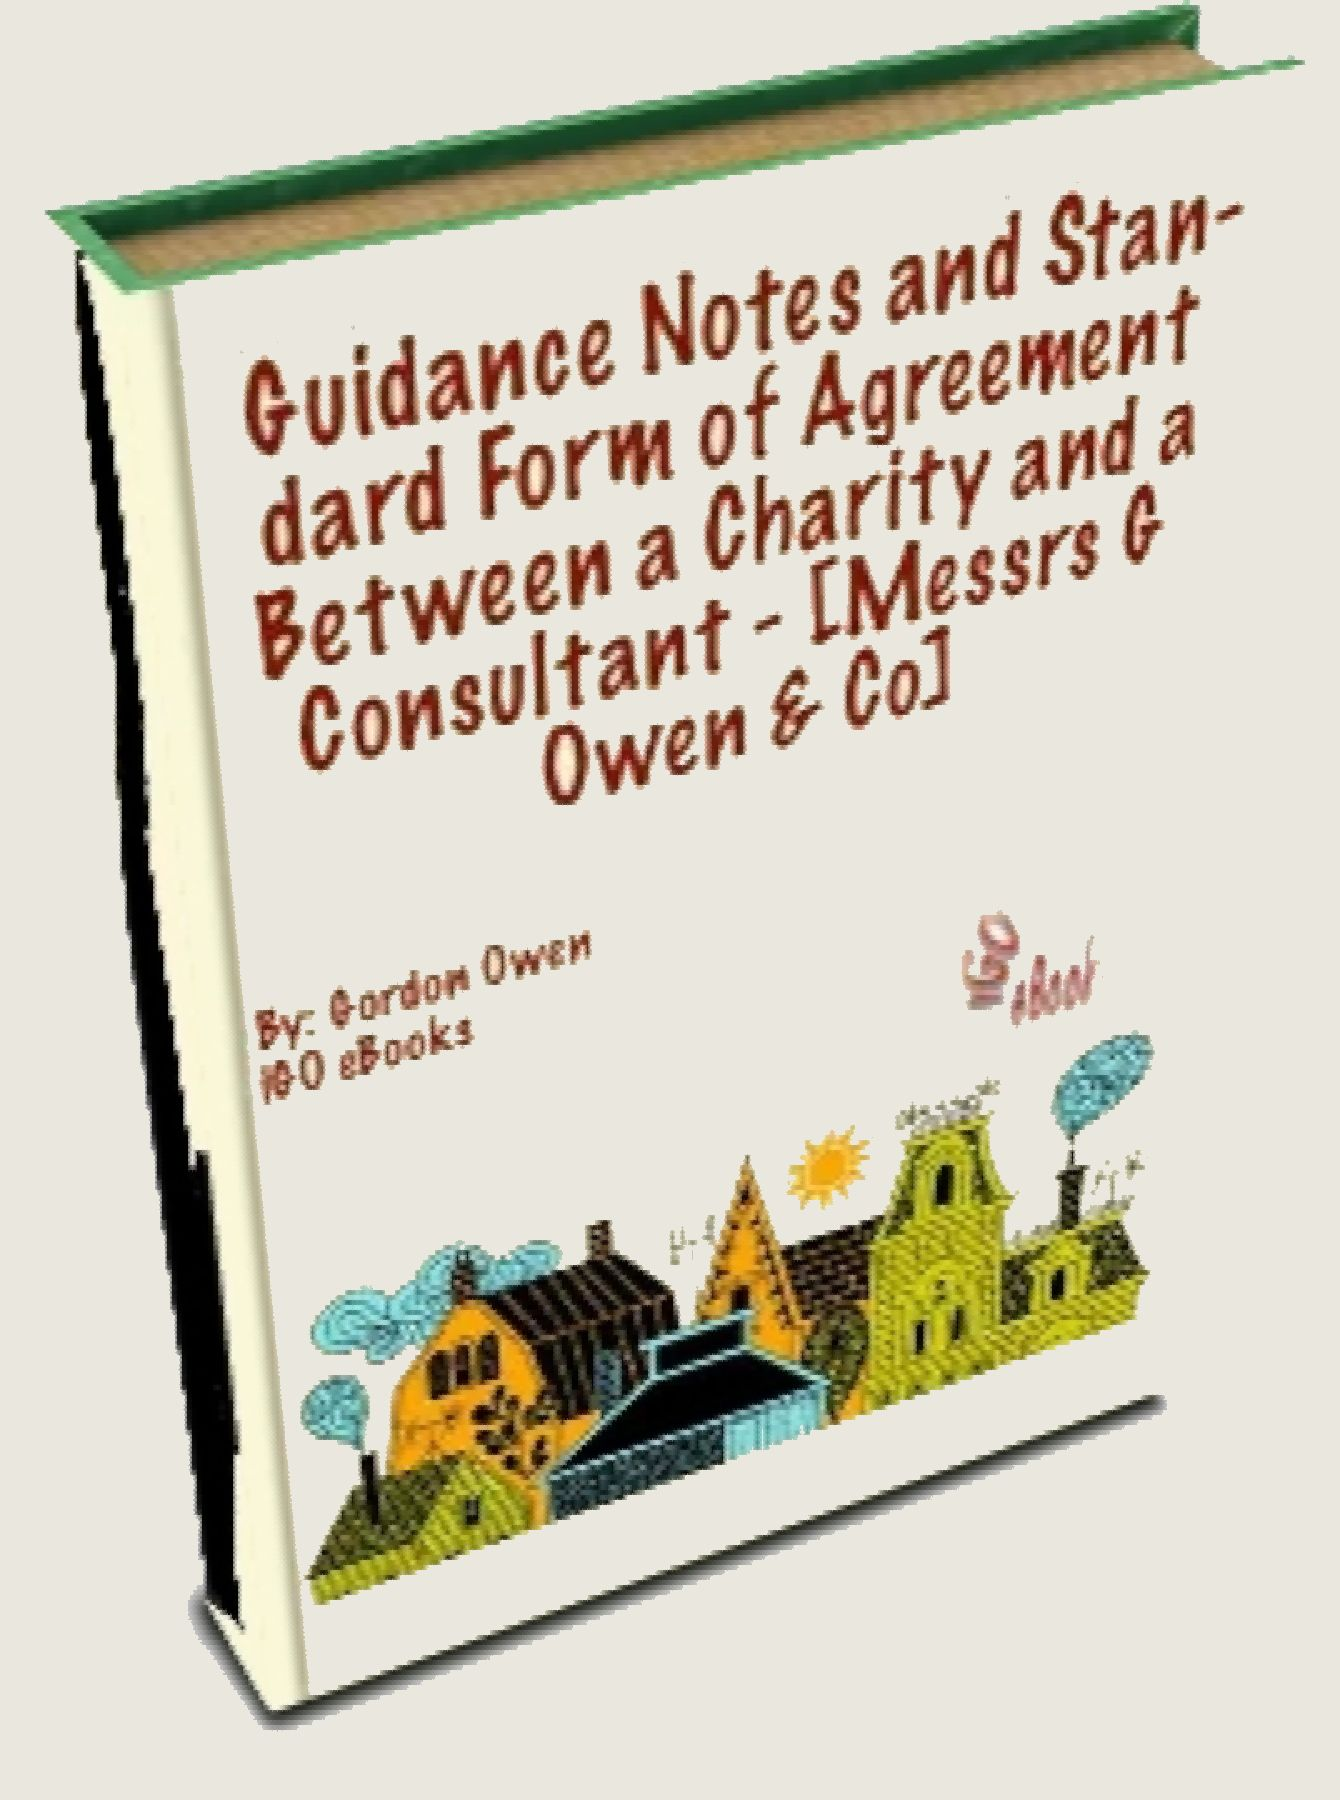 Guidance Notes And Standard Form Of Agreement Between A Charity And